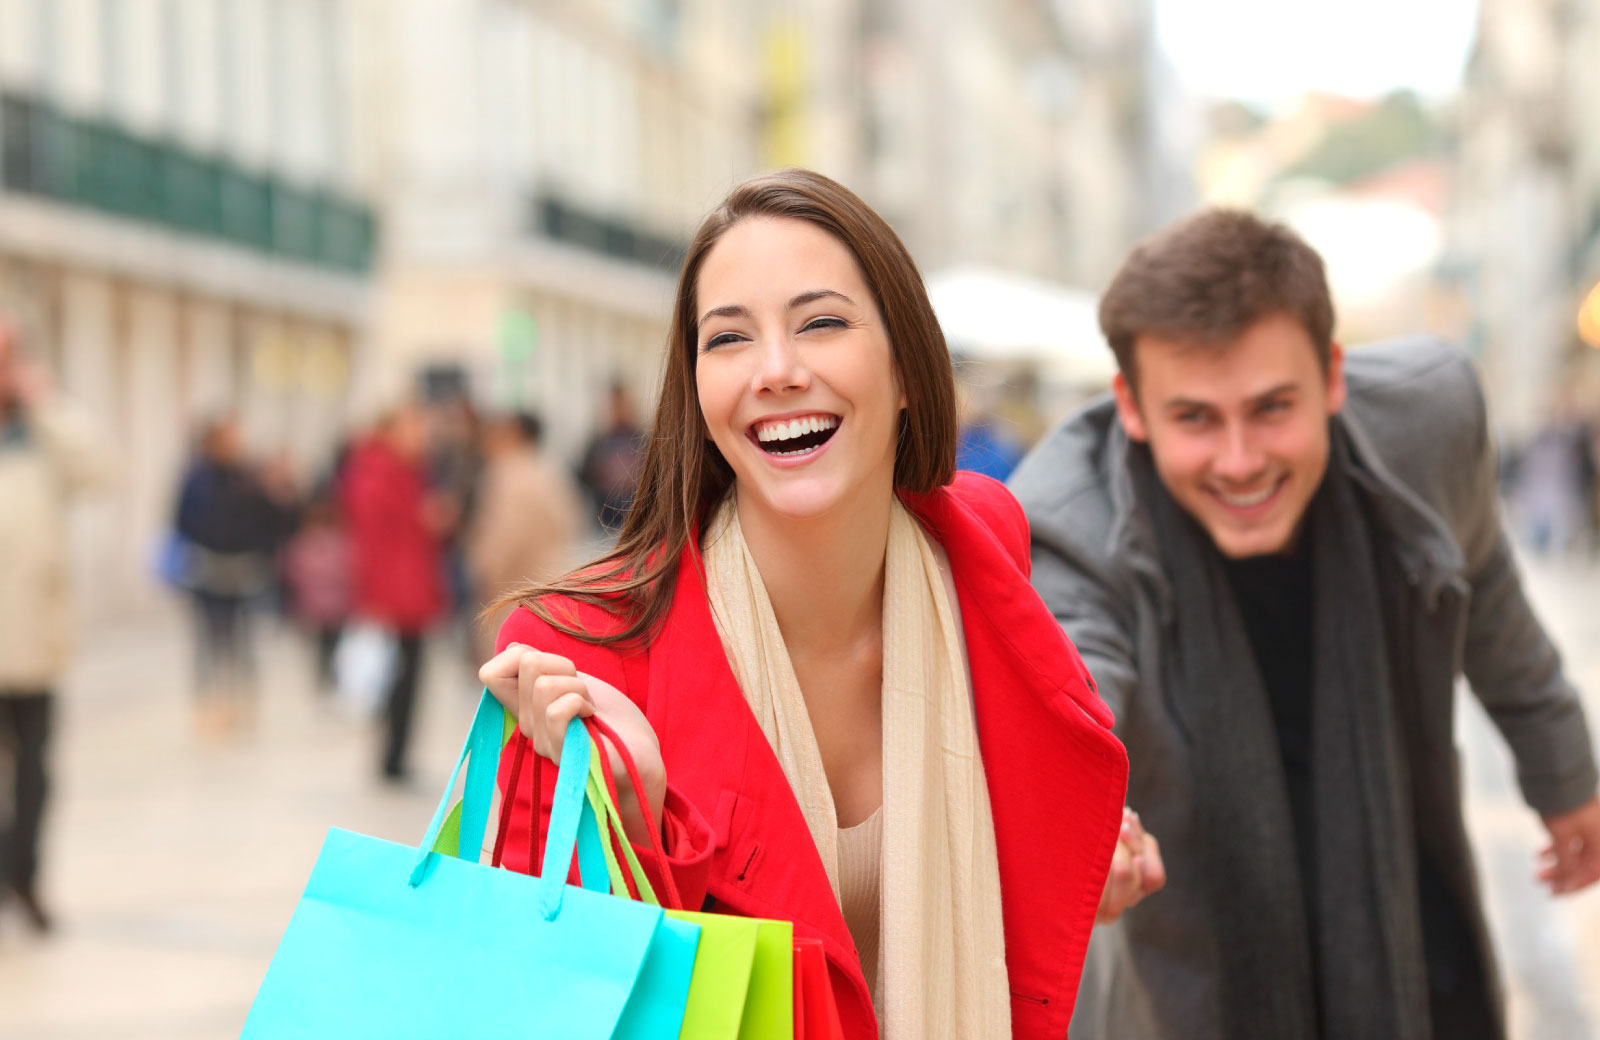 woman smiling with shopping bags and holding man's hand